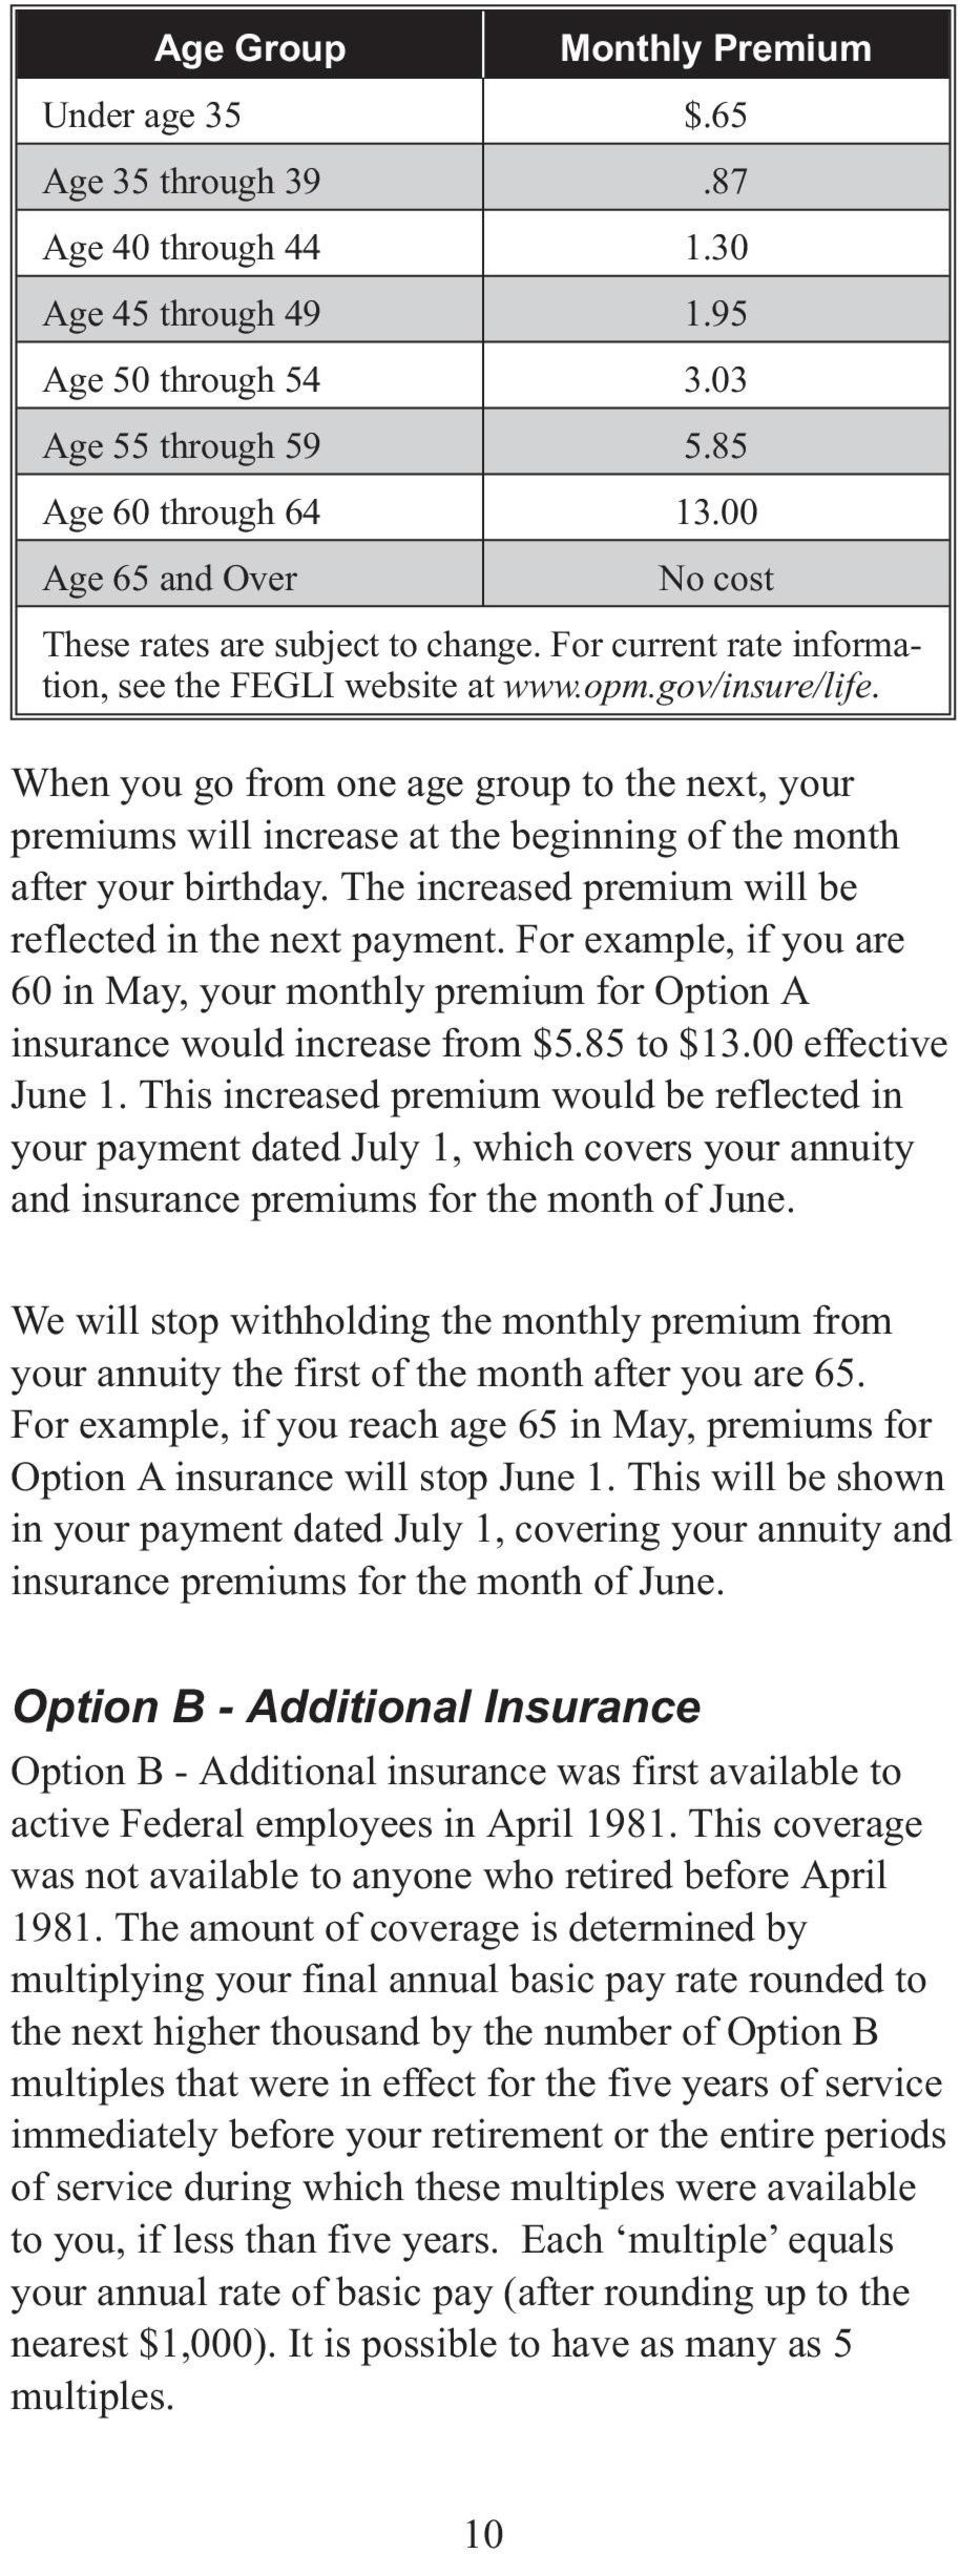 When you go from one age group to the next, your premiums will increase at the beginning of the month after your birthday. The increased premium will be reflected in the next payment.